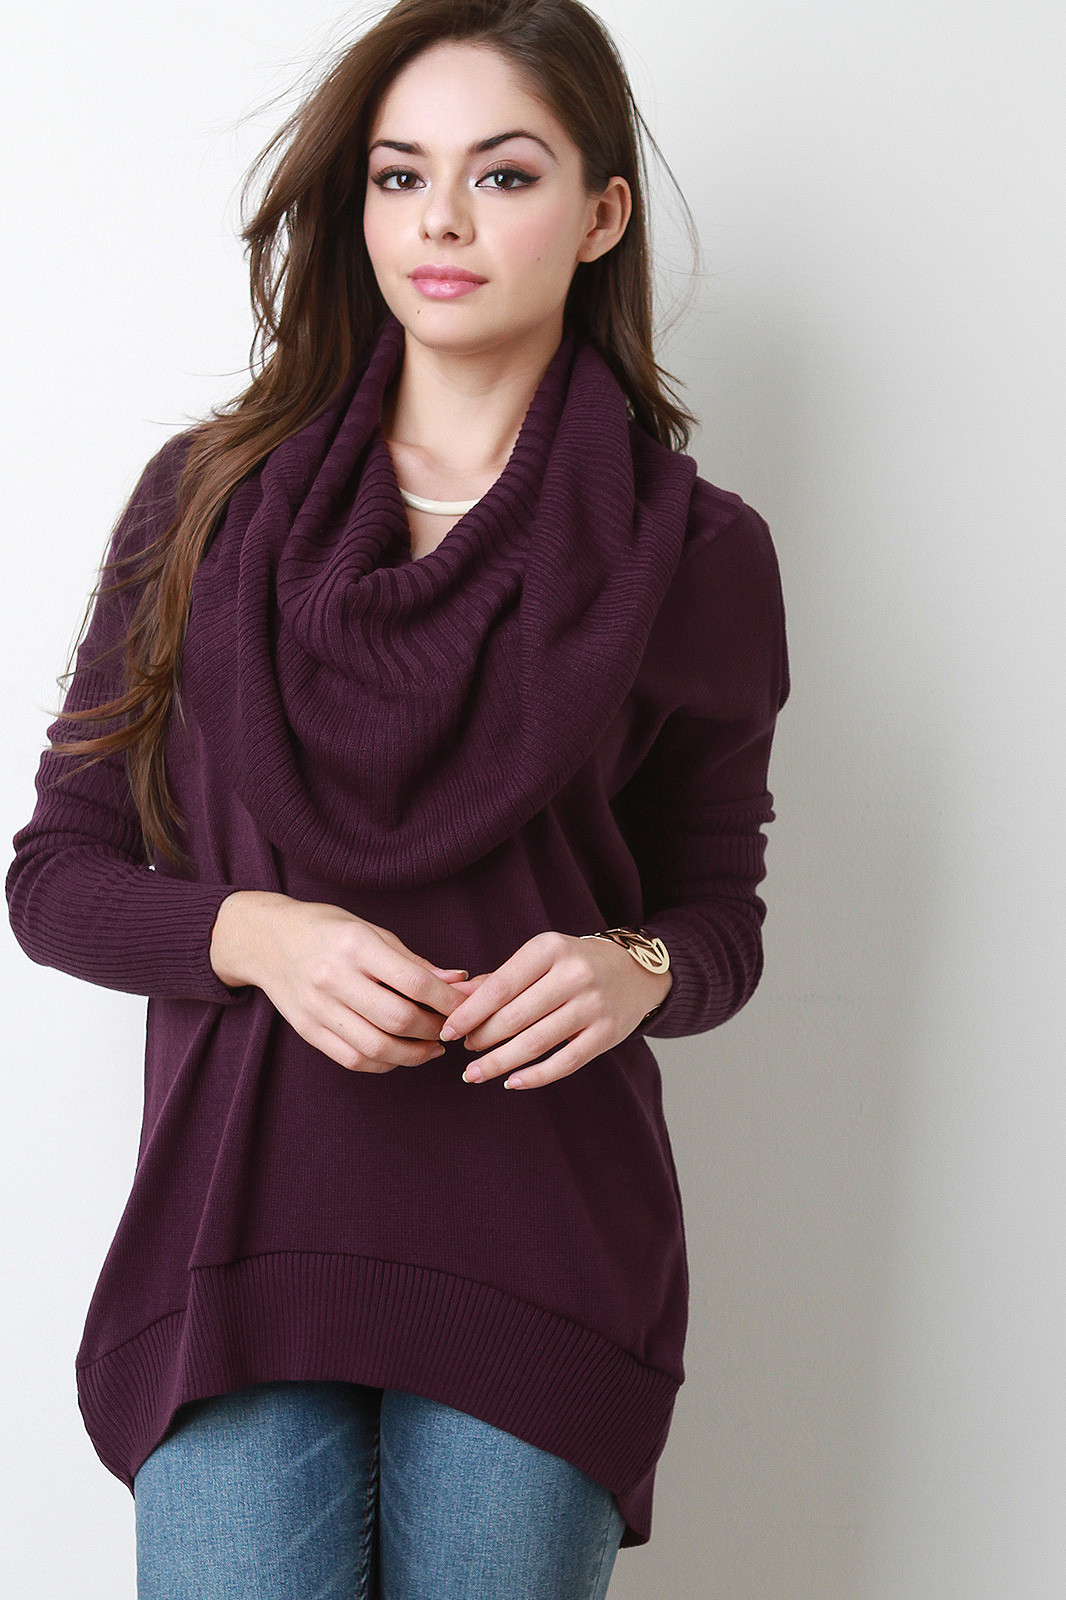 Awesome Oversized Cowl Neck Knit Sweater Cowl Neck Knit Sweater Of Top 42 Pictures Cowl Neck Knit Sweater